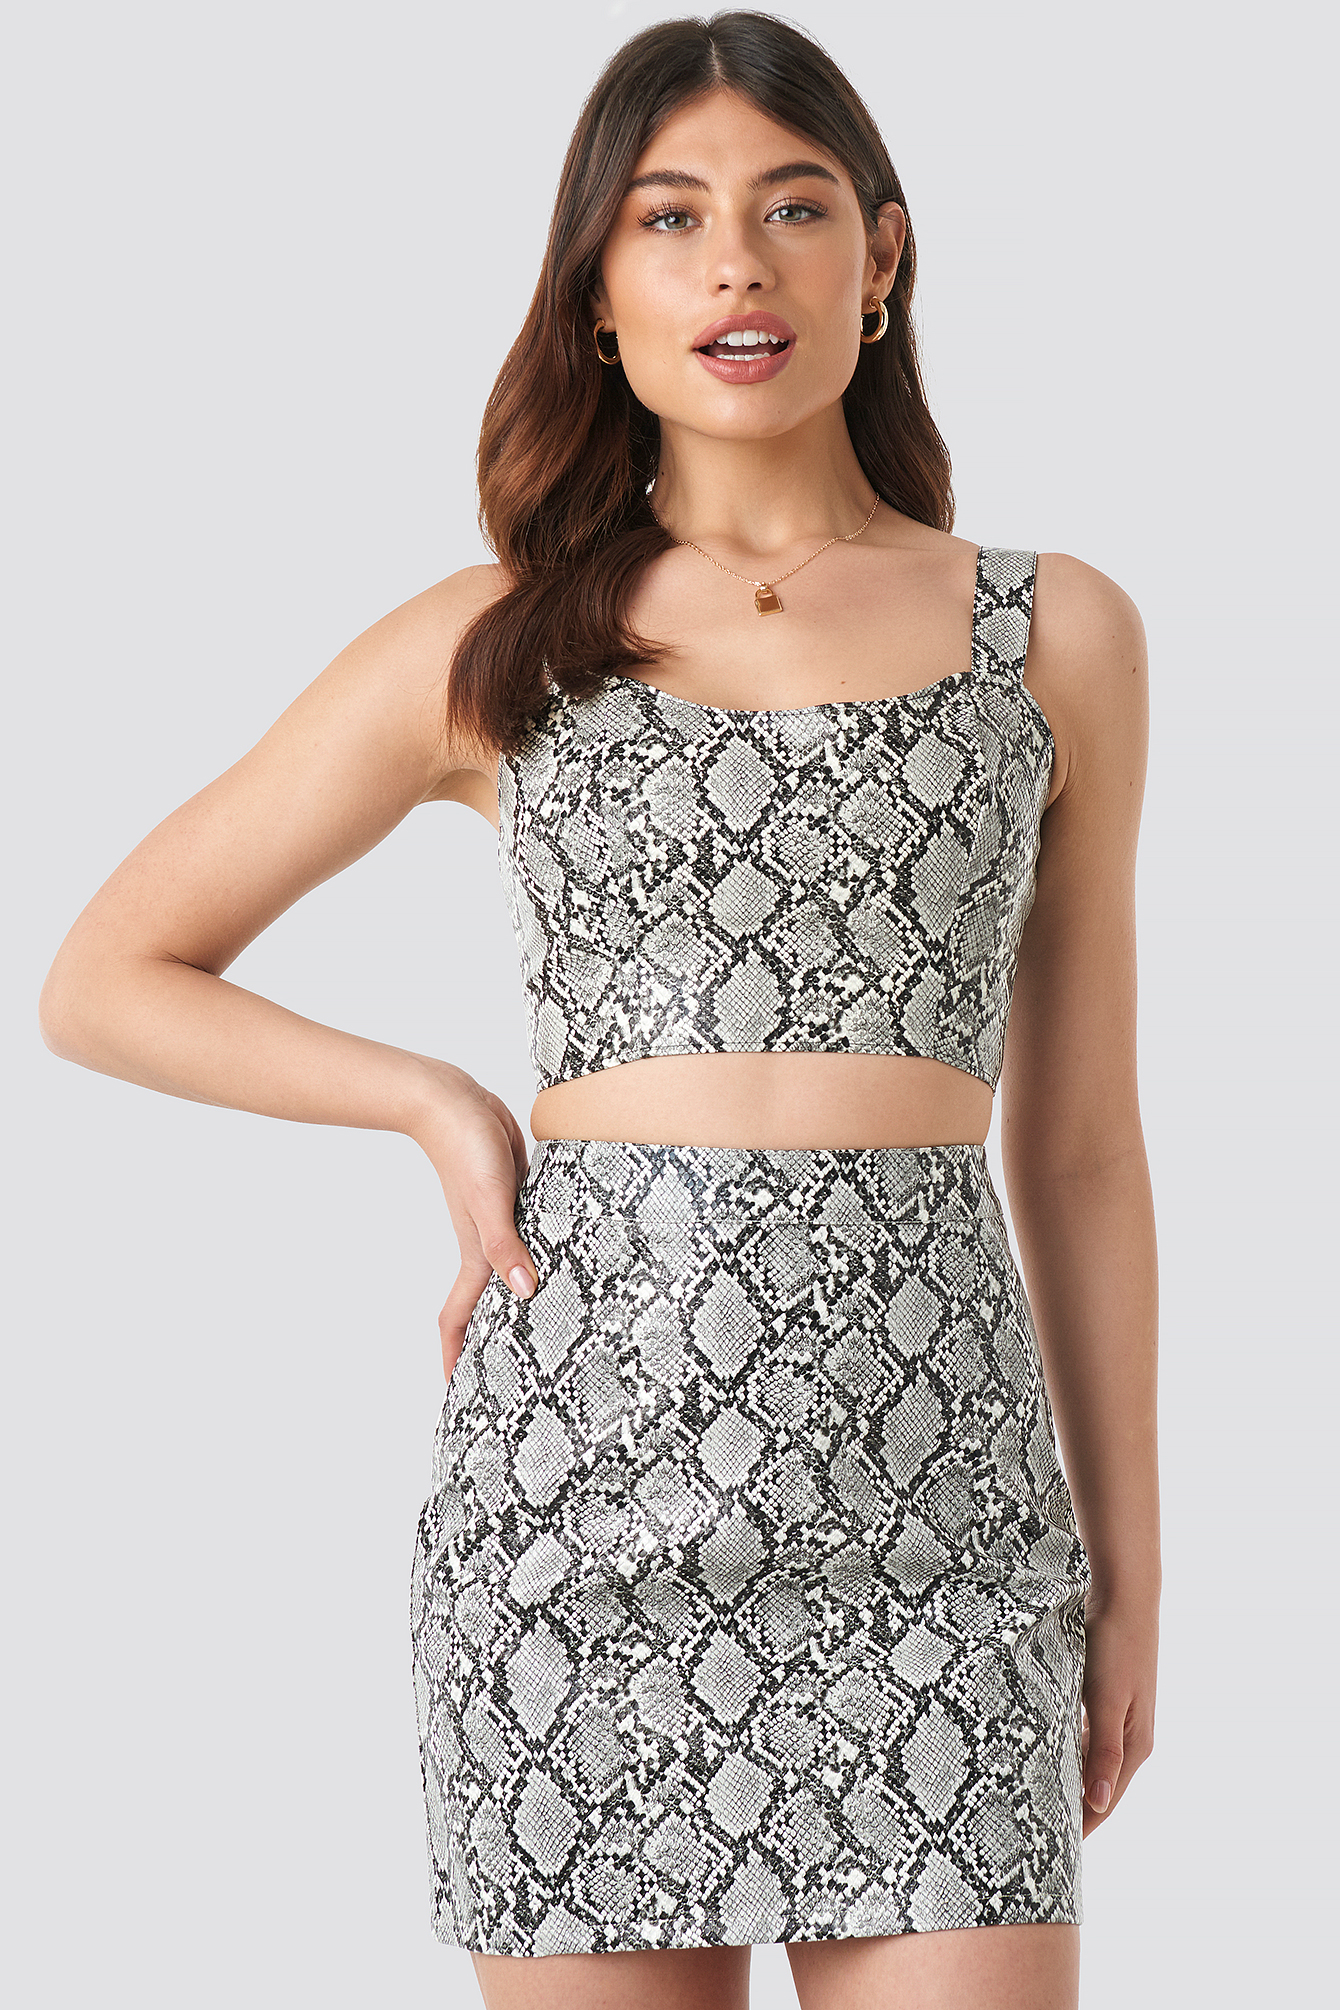 Snake Snake Printed PU Mini Skirt